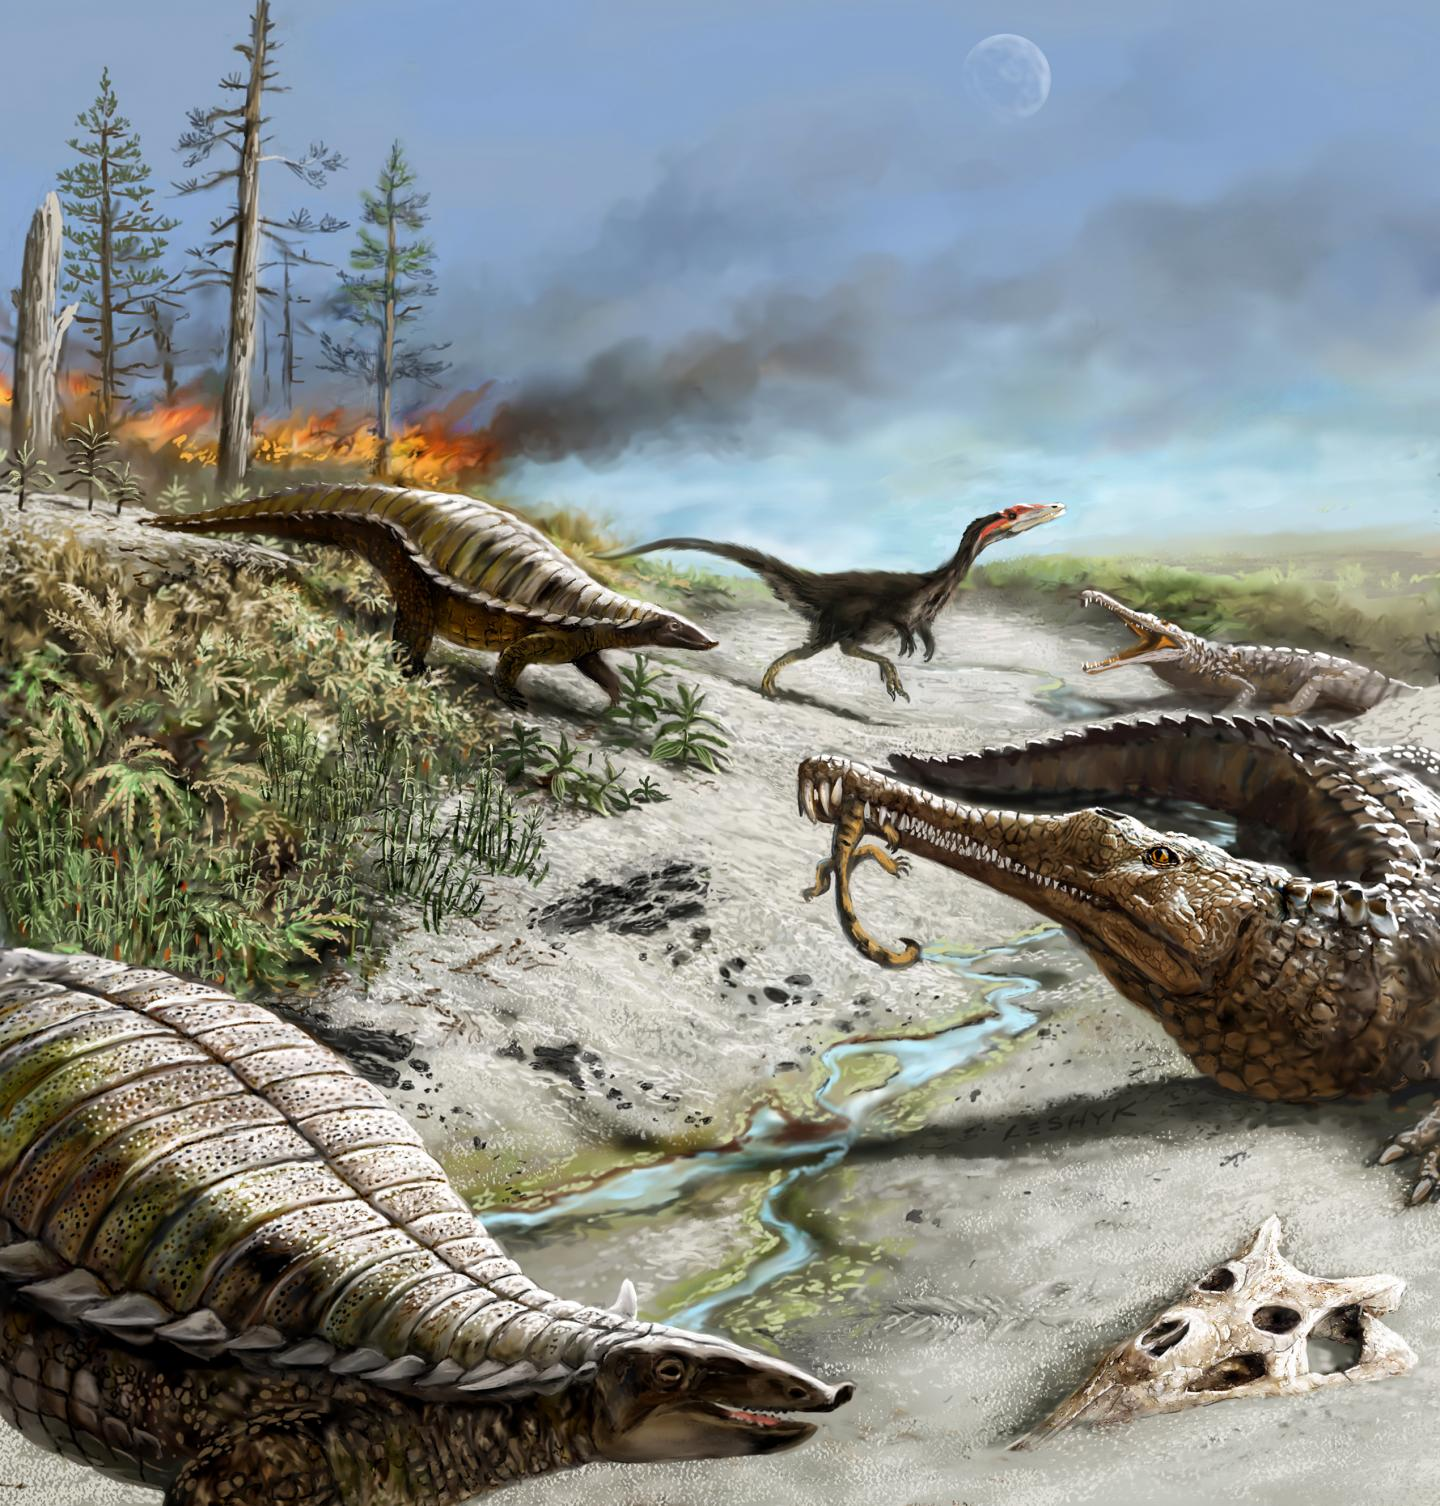 Dinosaurs Were Small and Rare in the Tropics